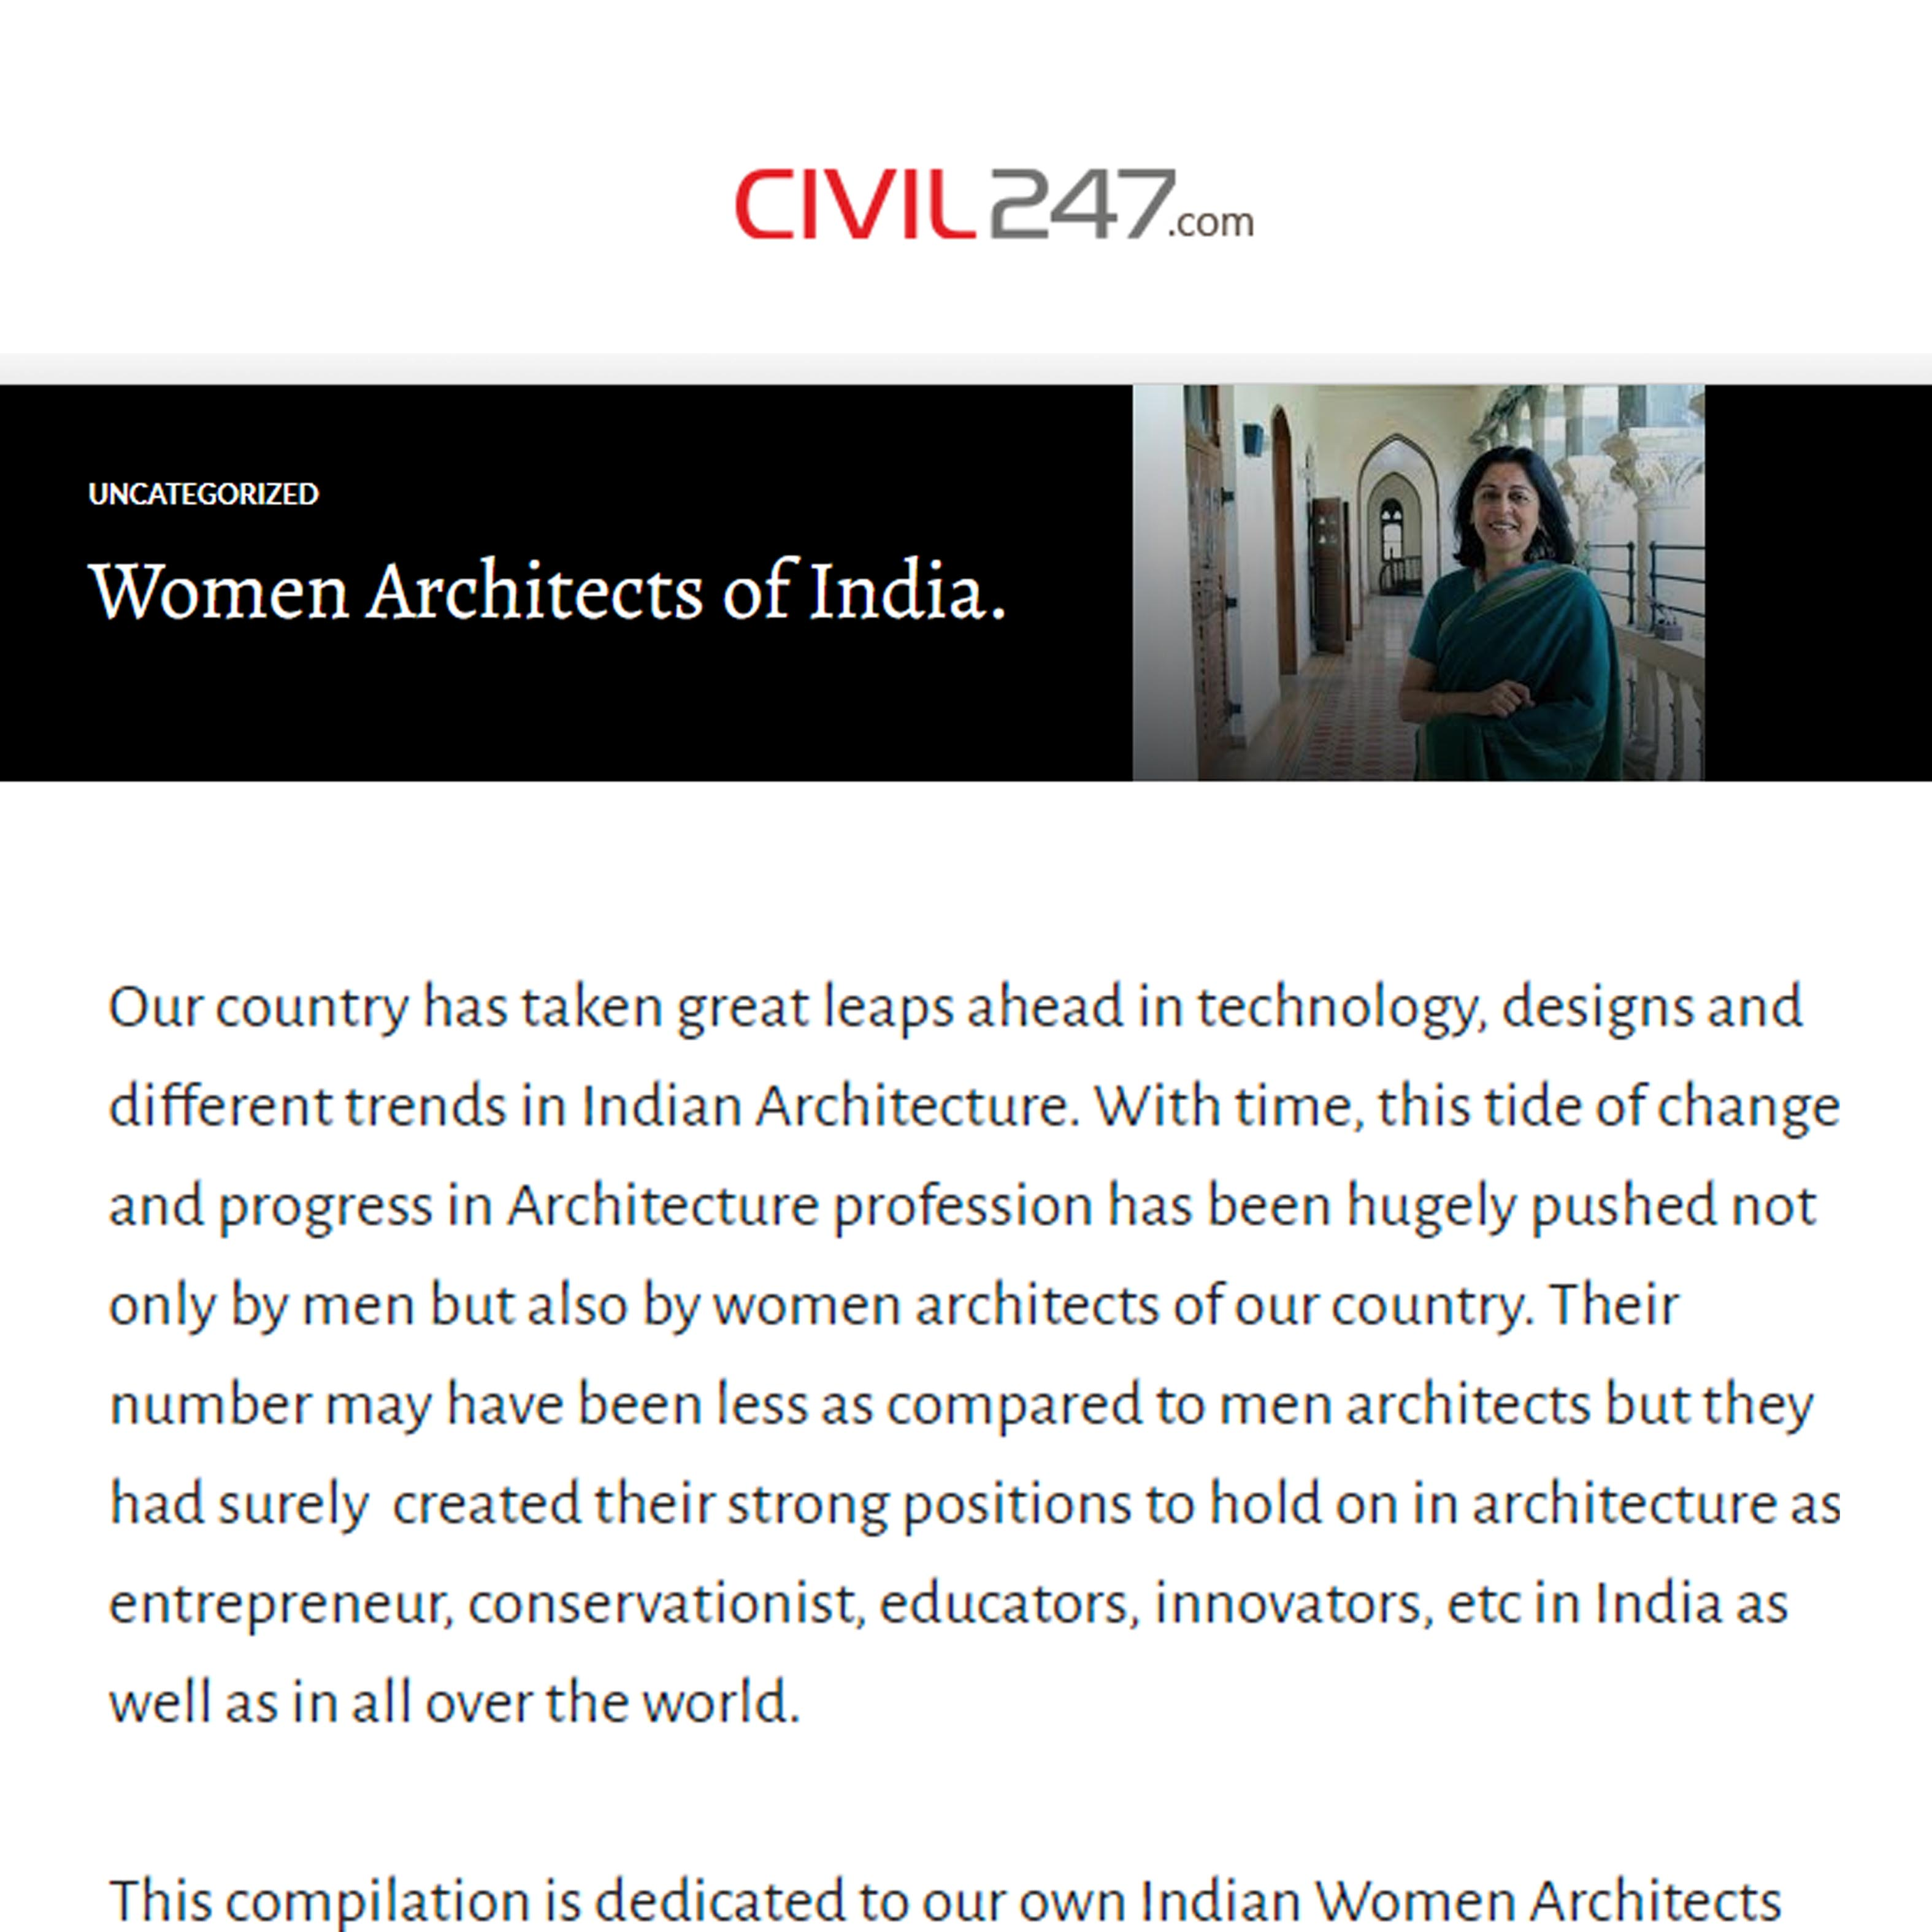 Uncategorized Women Architects of India, Blog.Civil 247,9th March 2016